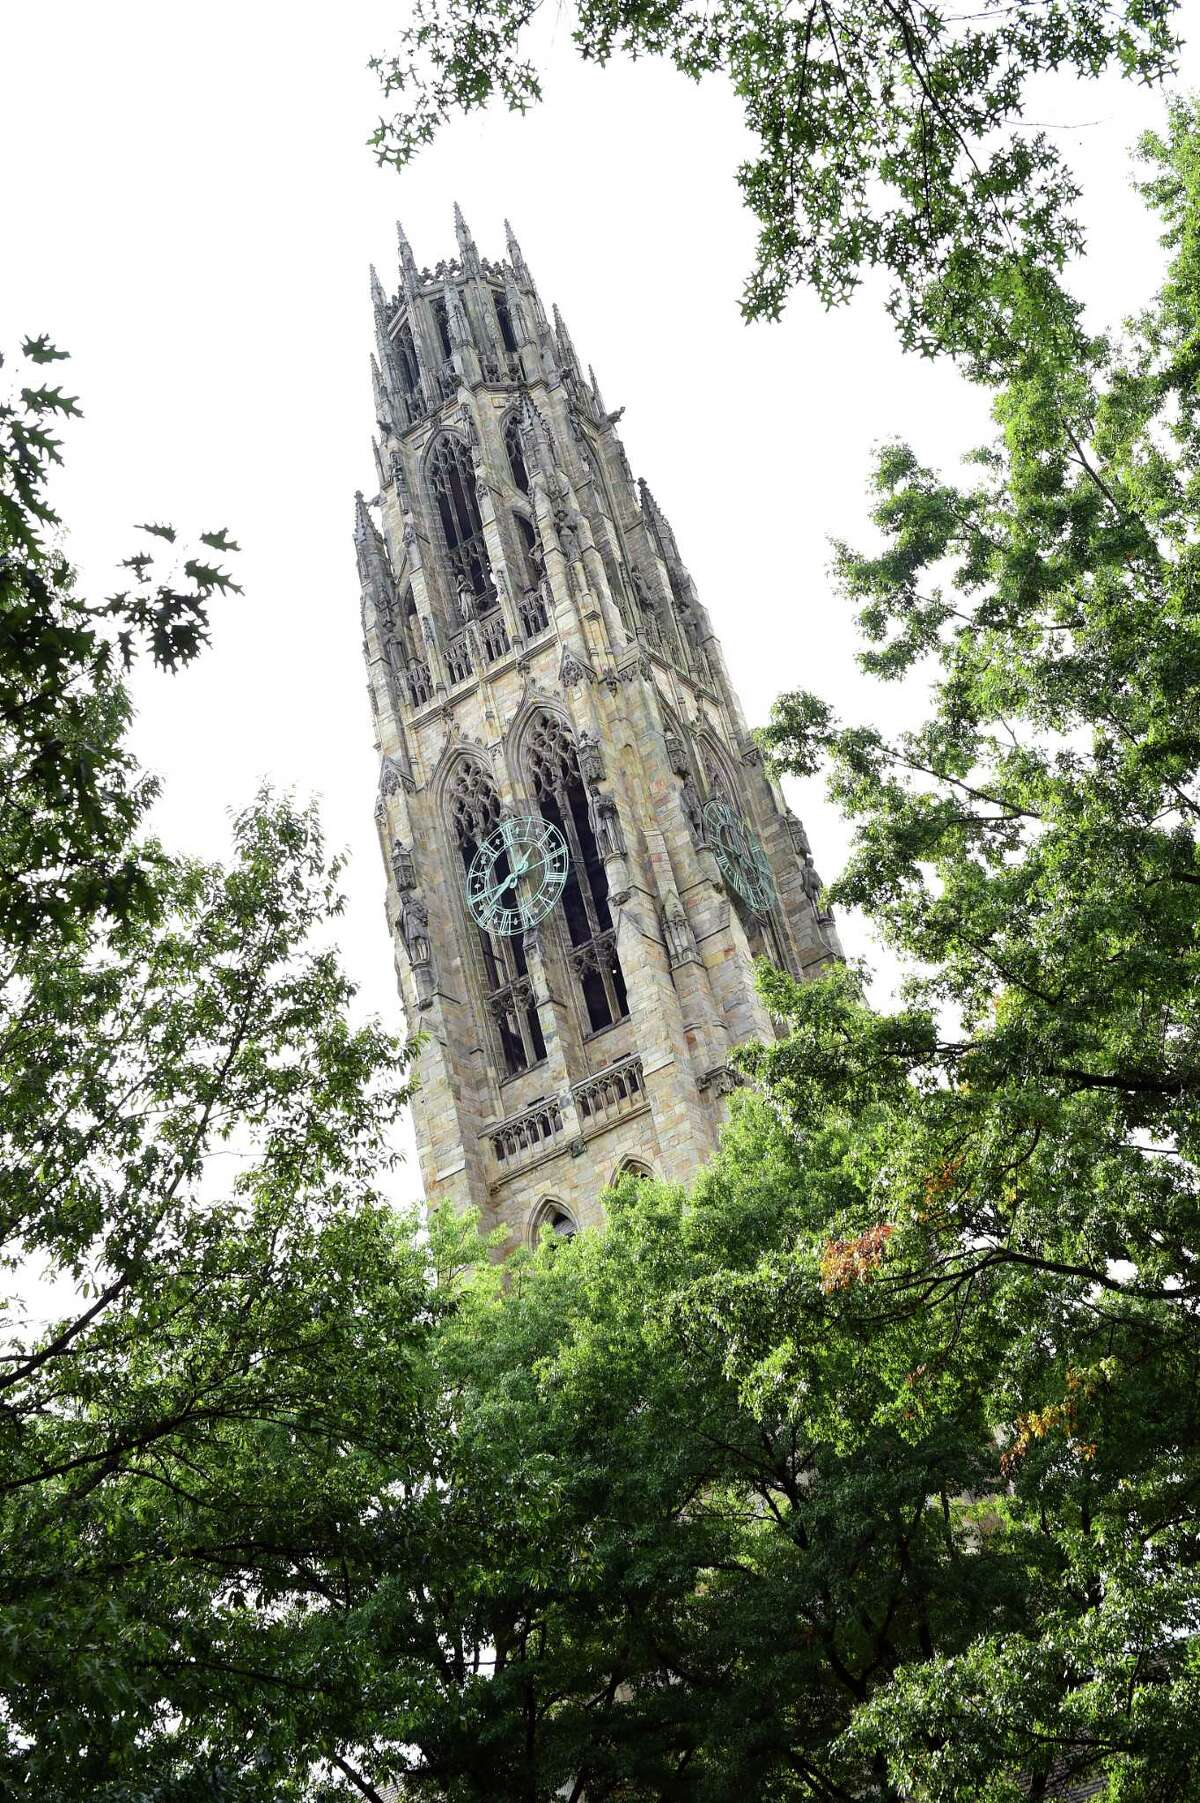 Harkness Tower at Yale University in New Haven.